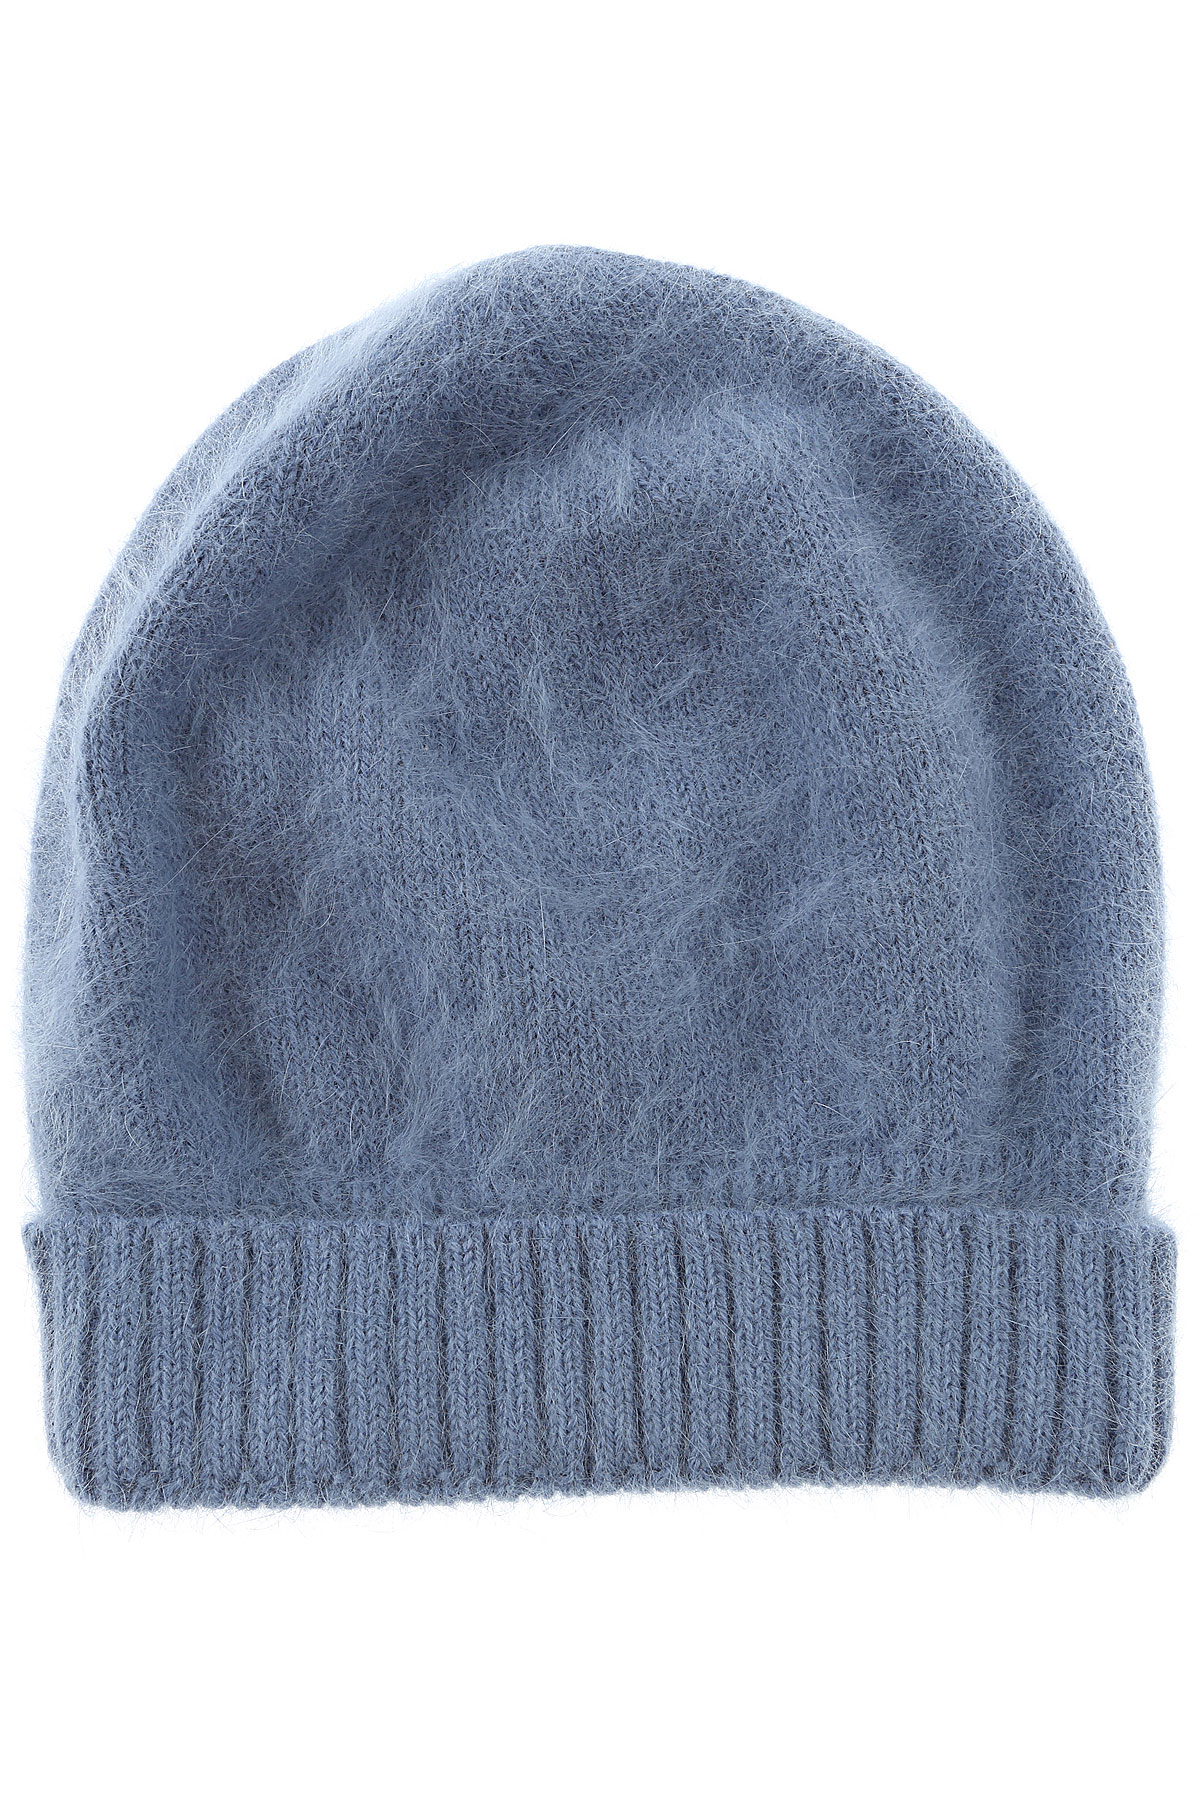 Image of Roberto Collina Hat for Women, Azure, Angora, 2017